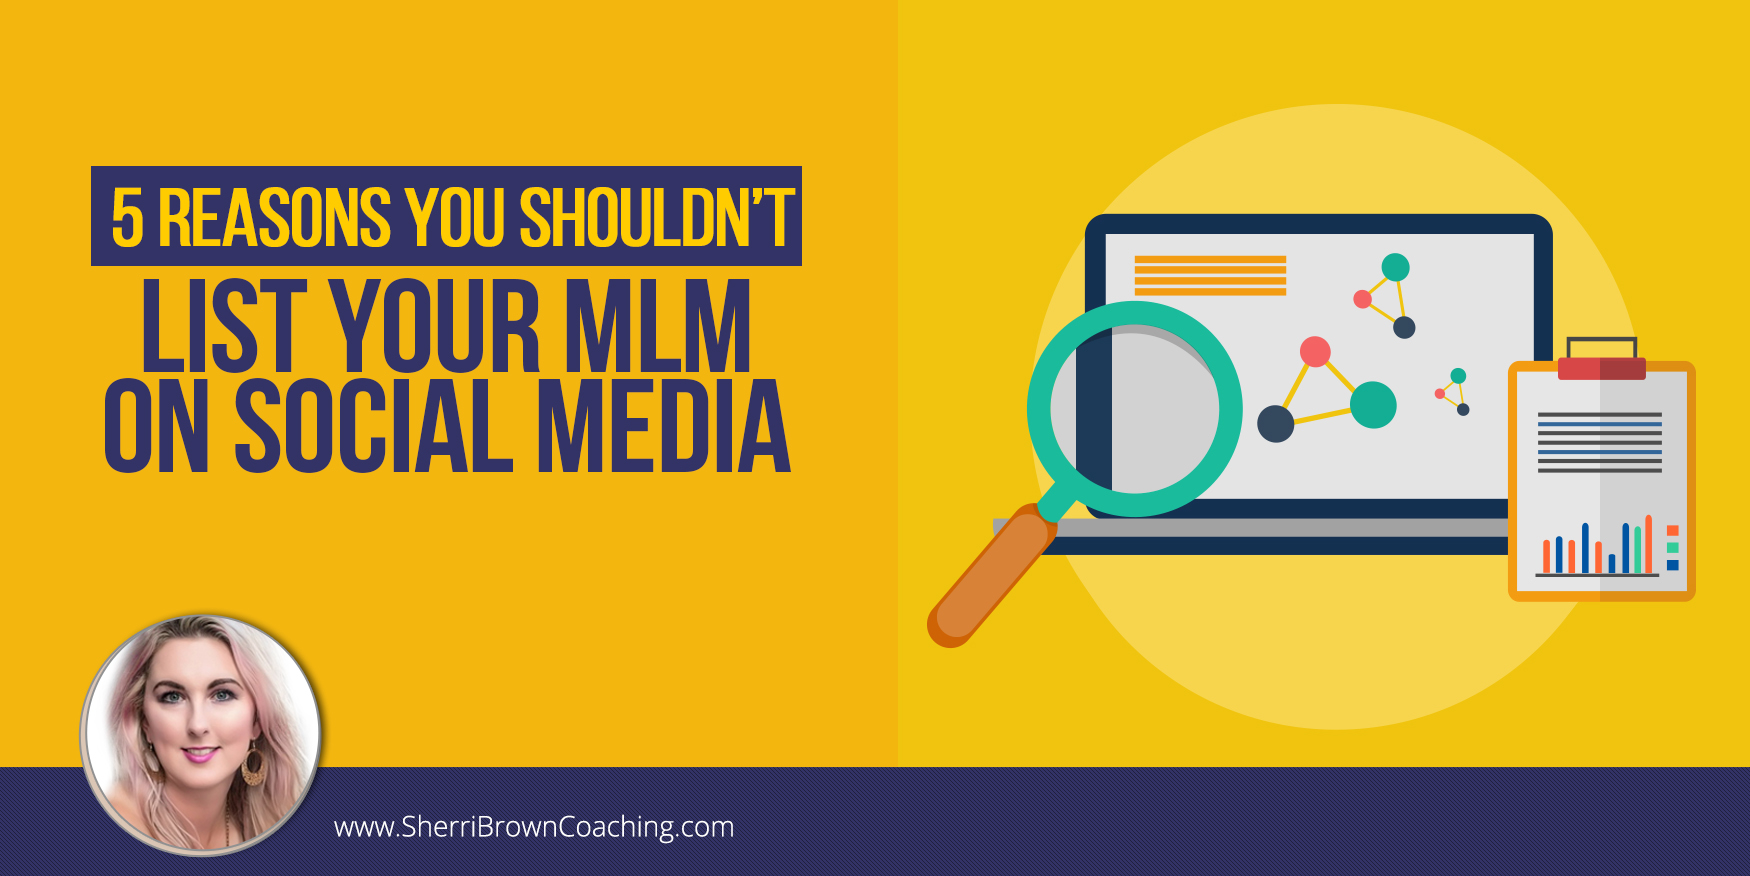 5 reasons you shouldnt list your mlm on social media sherri brown 5 reasons you shouldnt list your mlm on social media sherri brown coaching malvernweather Choice Image